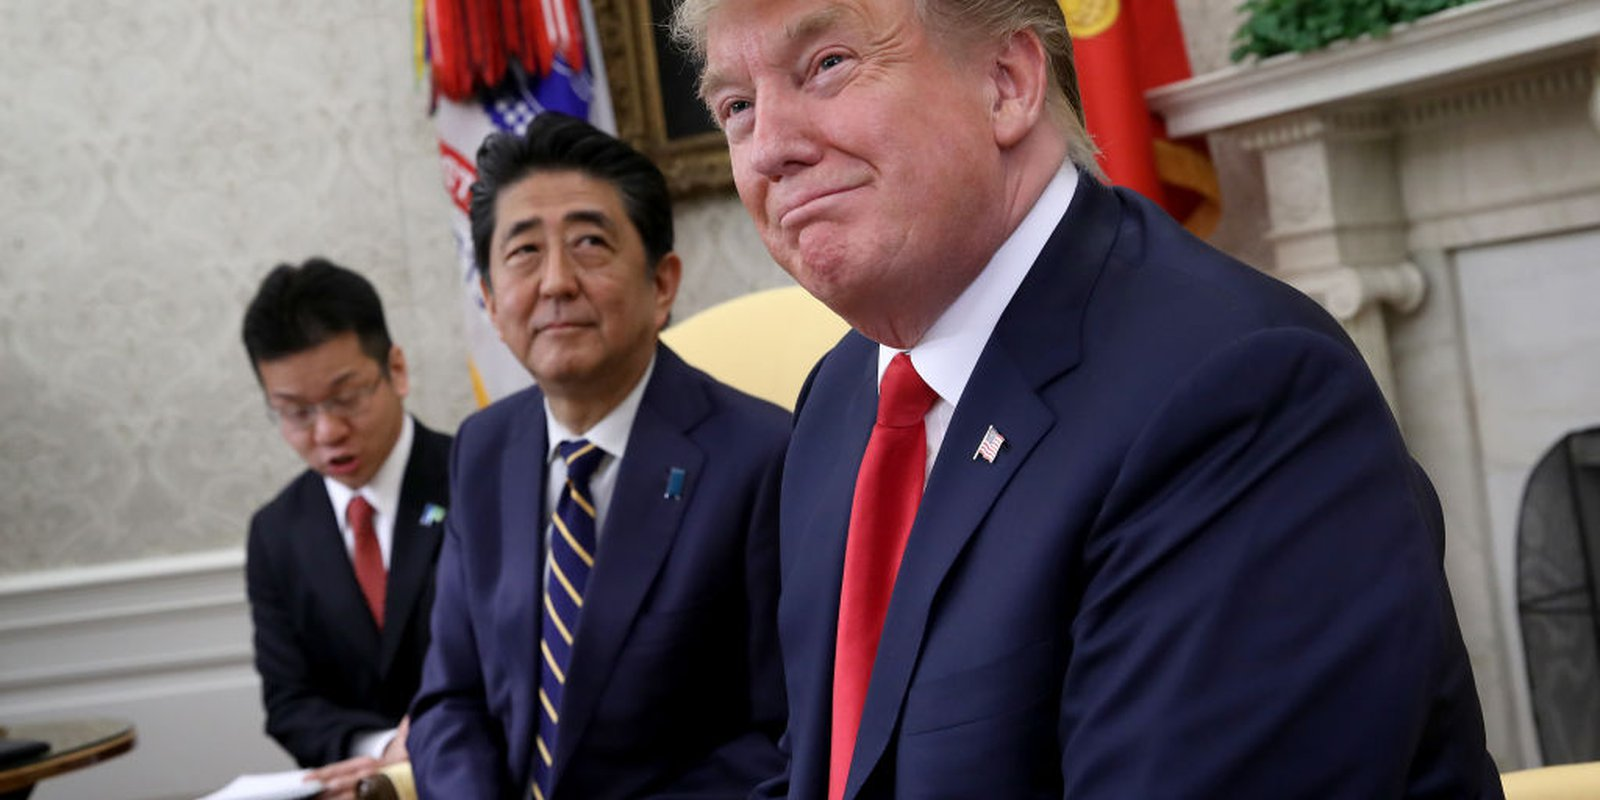 US President Donald Trump meets with Japanese Prime Minister Shinzo Abe in the Oval Office of the White House on 26 April 2019. Photo: Getty Images.